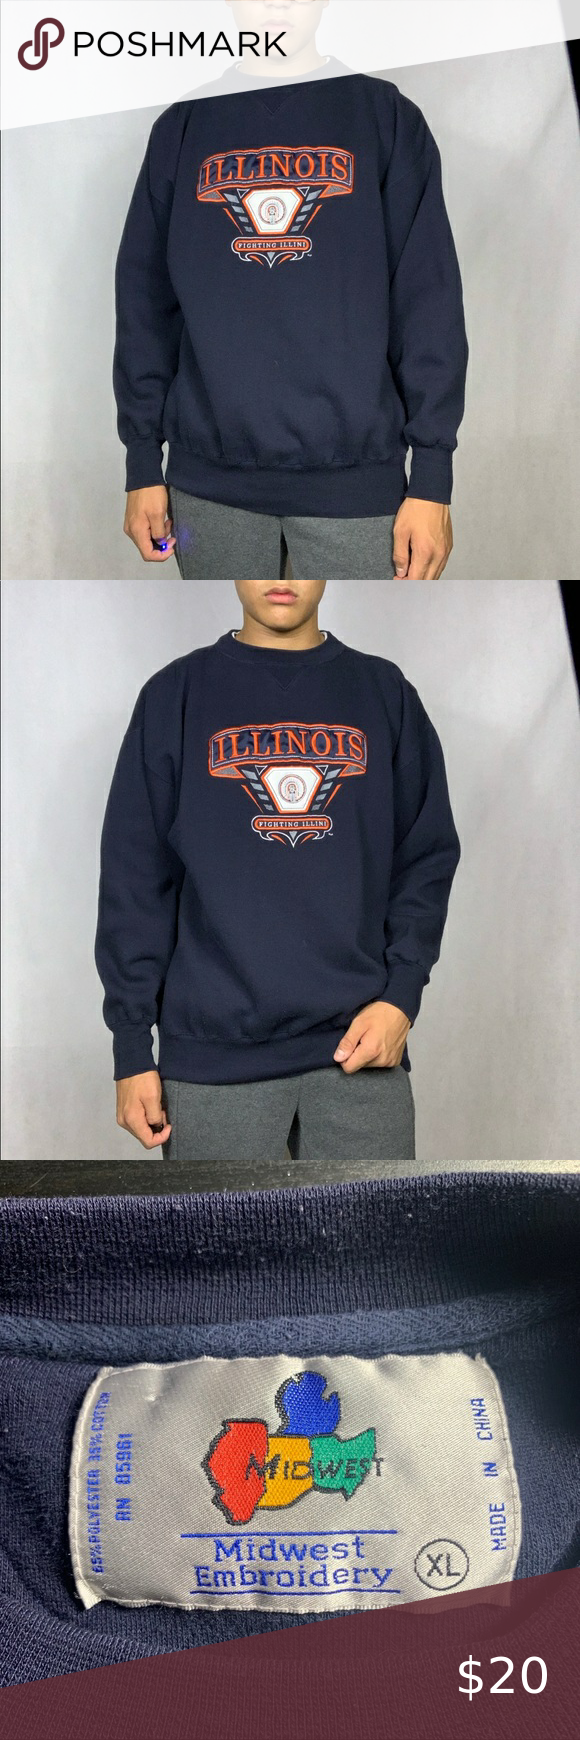 Vintage Illinois Fighting Illini Sweatshirt Fully Embroidered Design Model Is 6 0 For Reference 24 5 Inches Pi Sweatshirts Vintage Shirts Sweatshirt Shirt [ 1740 x 580 Pixel ]